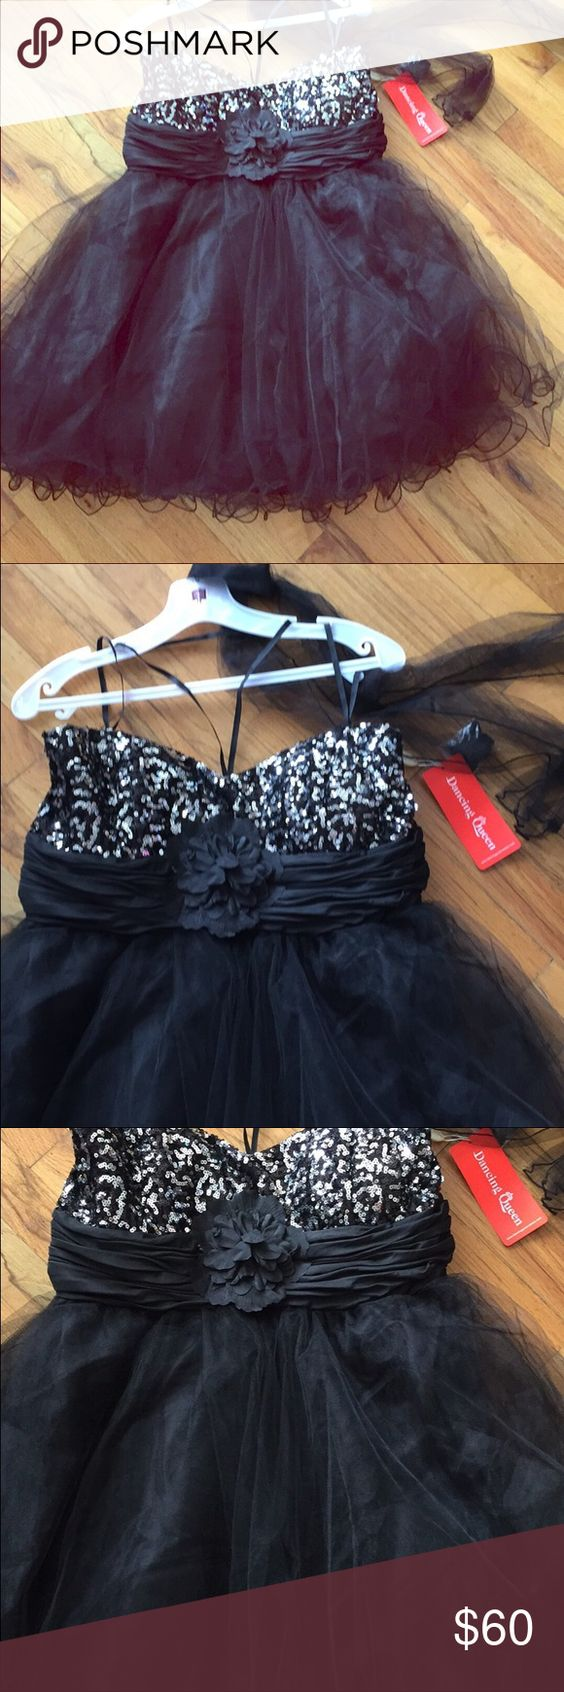 Black tulle poofy dress with silver sequinSz 2x. Brand new Dancing Queen Black short tulle poofy dress with silver sequined sweetheart neckline and detachable flower. Also comes with attachable straps and tulle shawl Sz 2x. Dancing Queen Dresses Prom